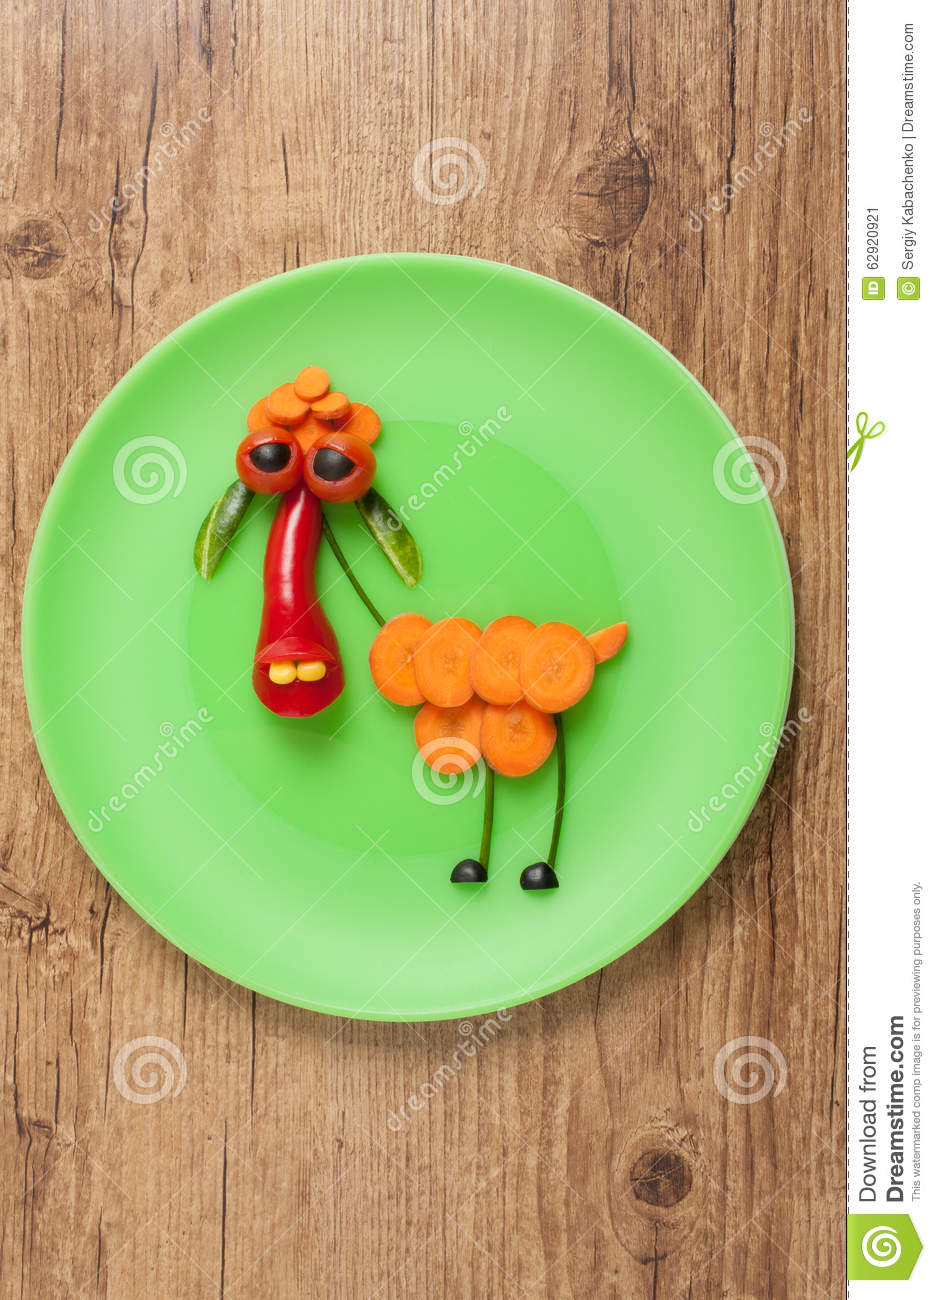 Vegetable sheep on green plate